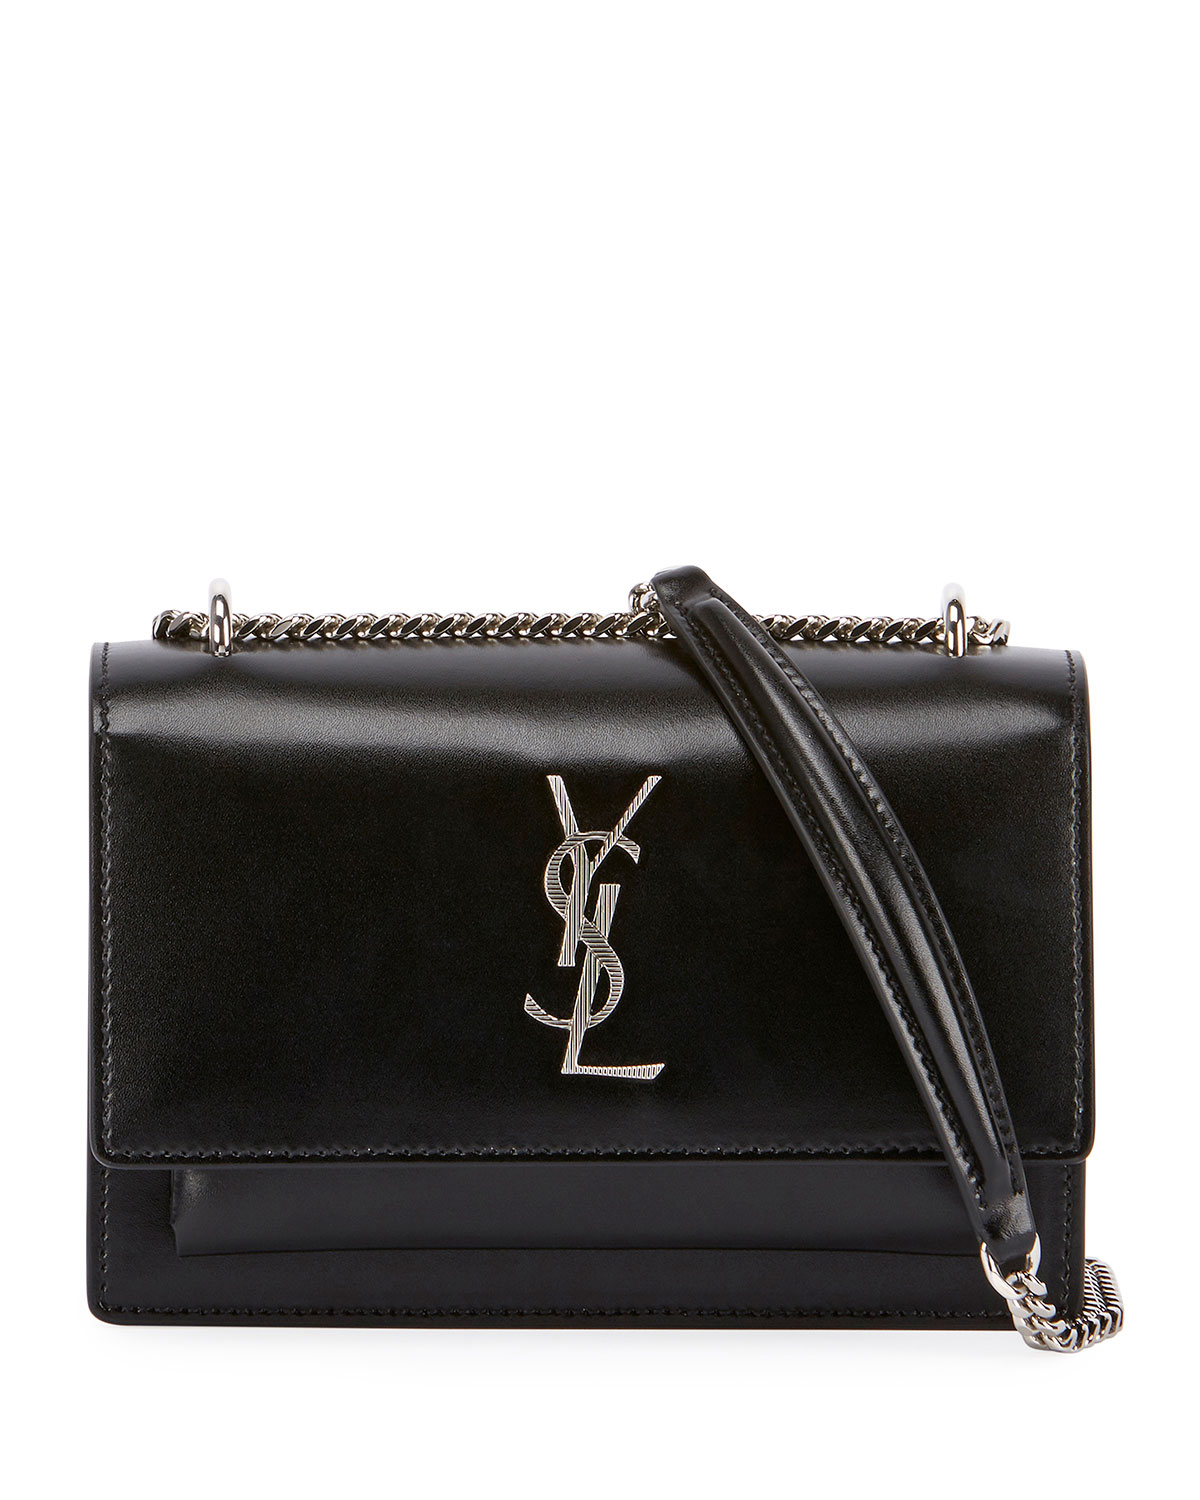 04f7f7dd99a Saint Laurent Sunset Monogram YSL Small Calf Leather Wallet on Chain |  Neiman Marcus